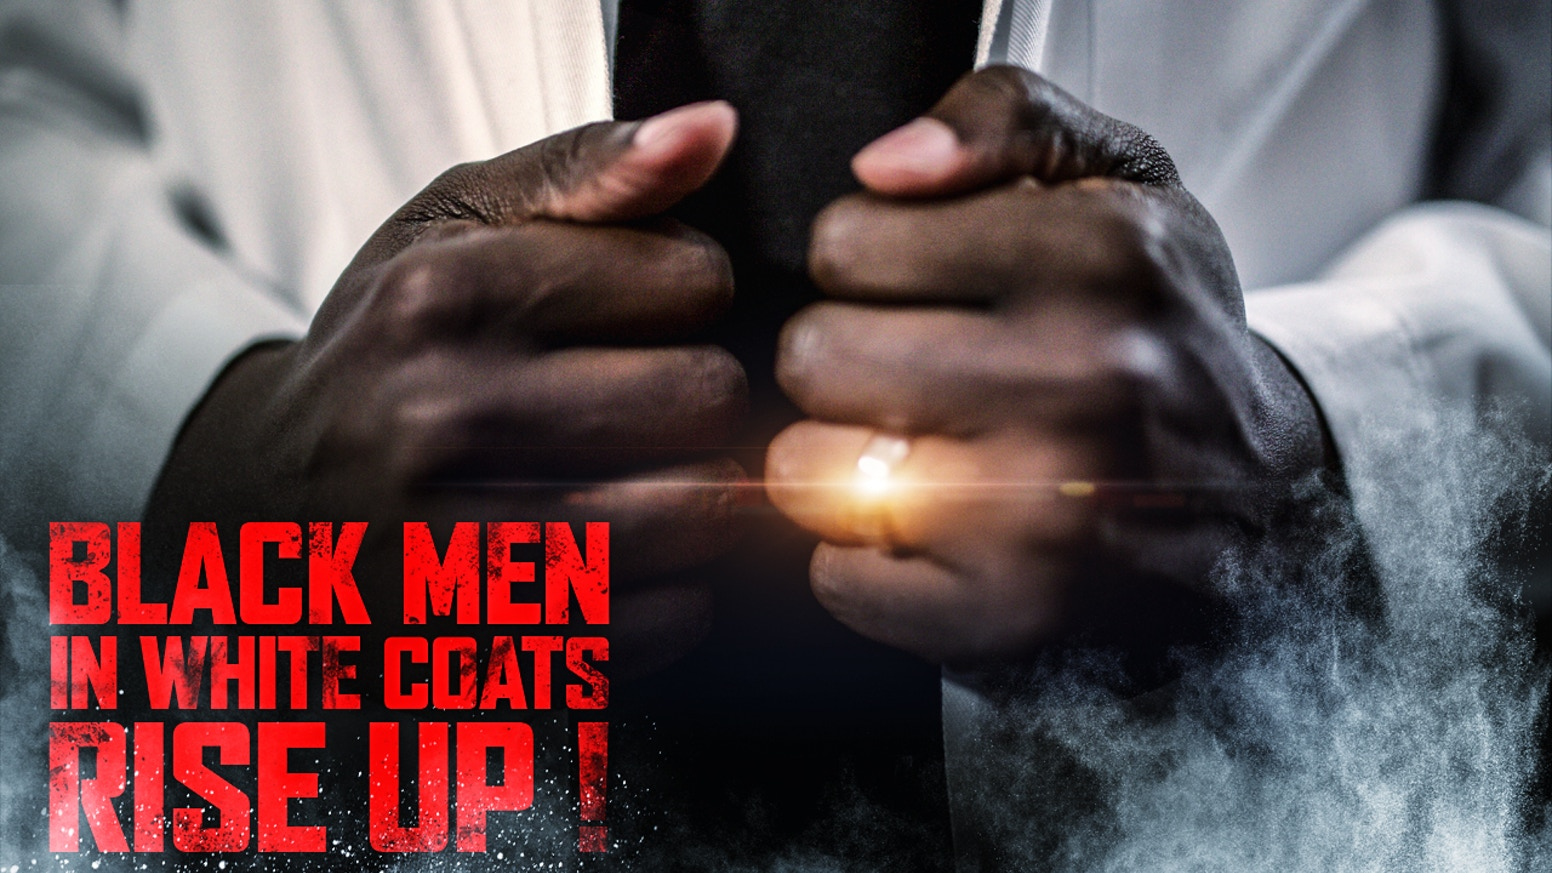 Rise Up The Story Of Black Men In White Coats By Dr Dale